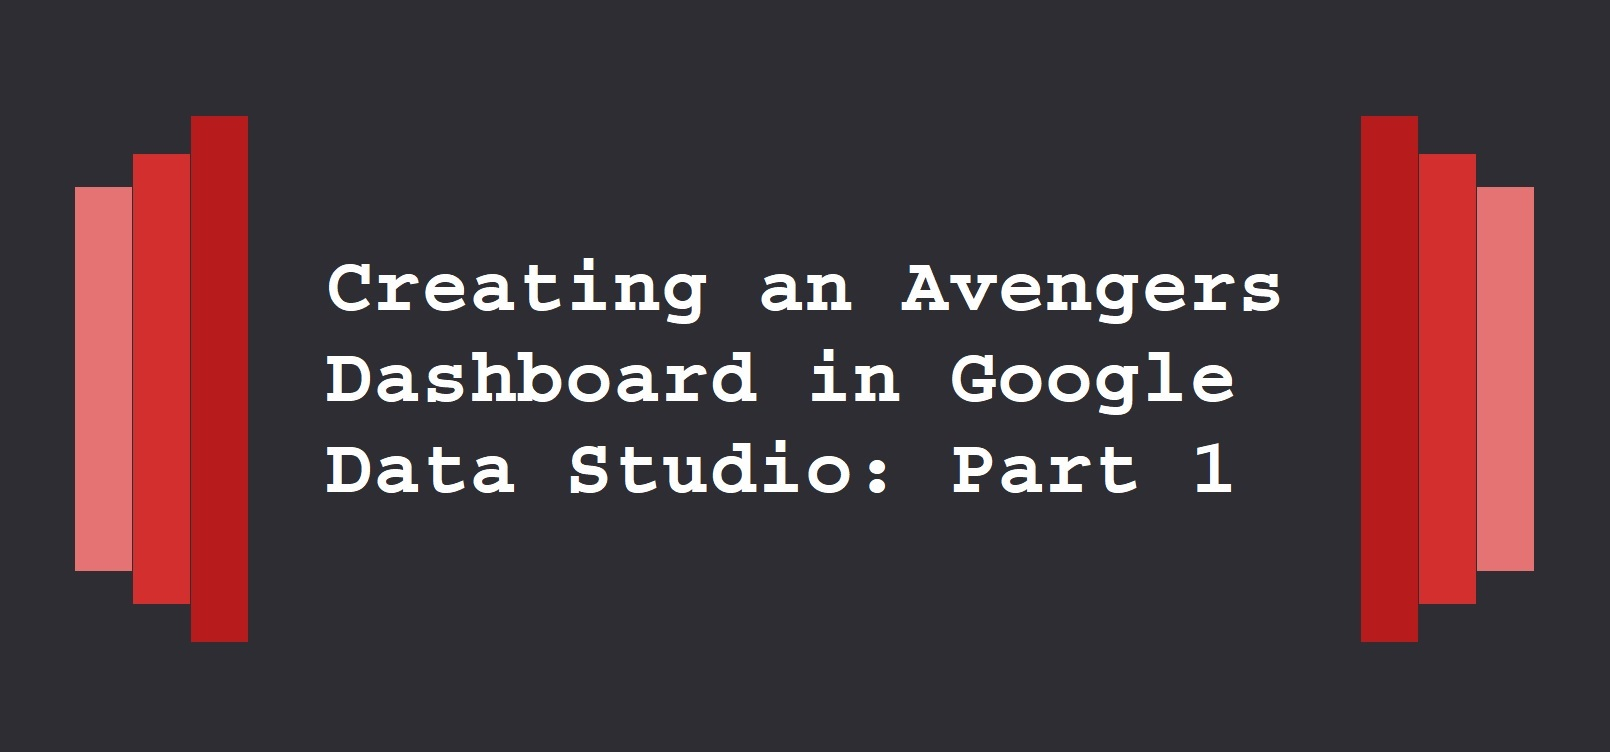 Creating an Avengers Dashboard in Google Data Studio: Part 1